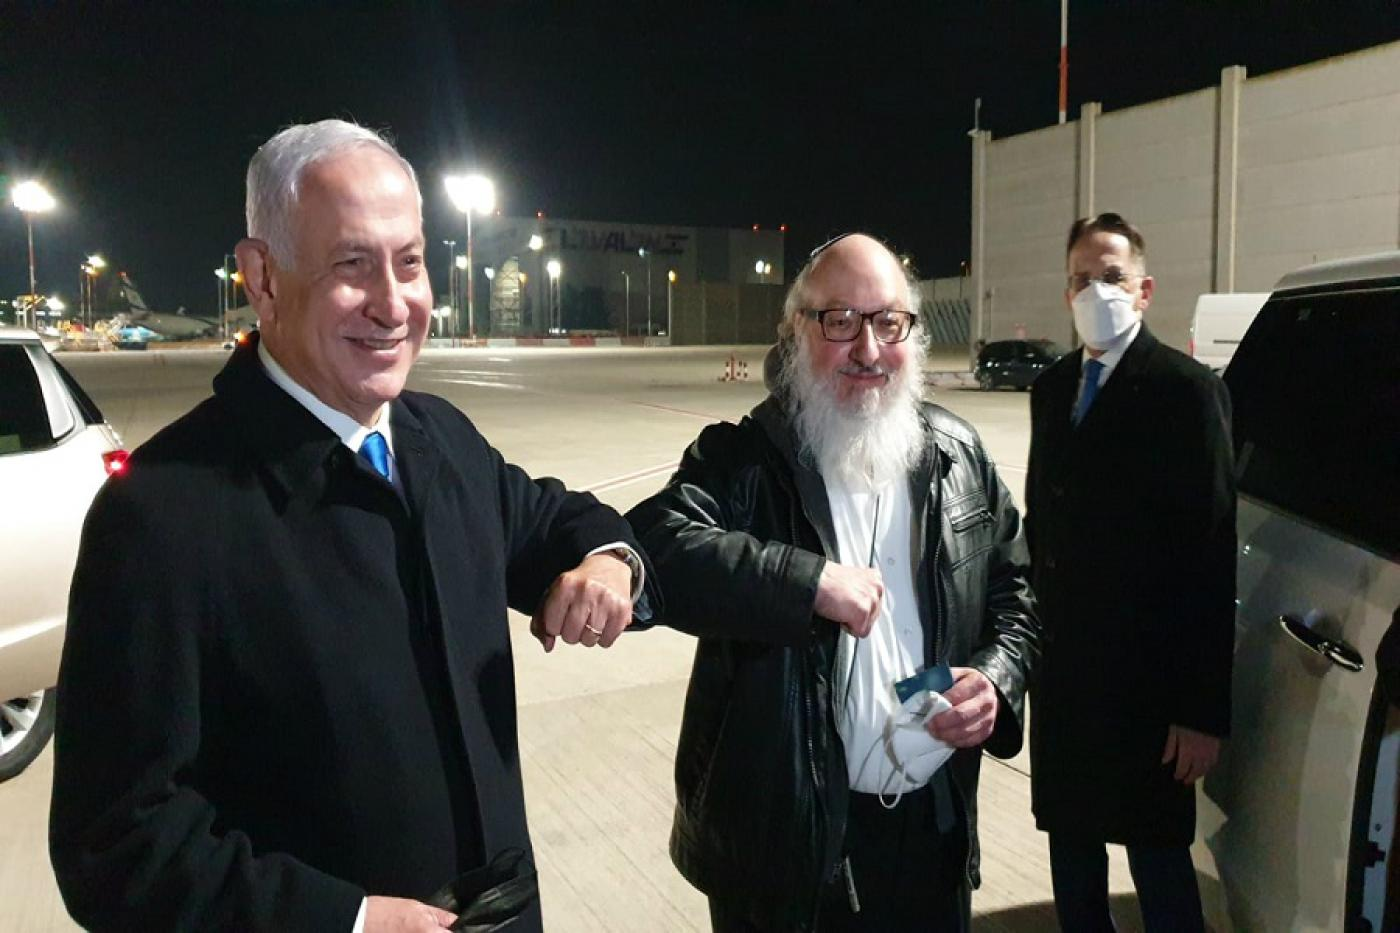 Convicted spy who sold USA military secrets arrives in Israel, granted citizenship